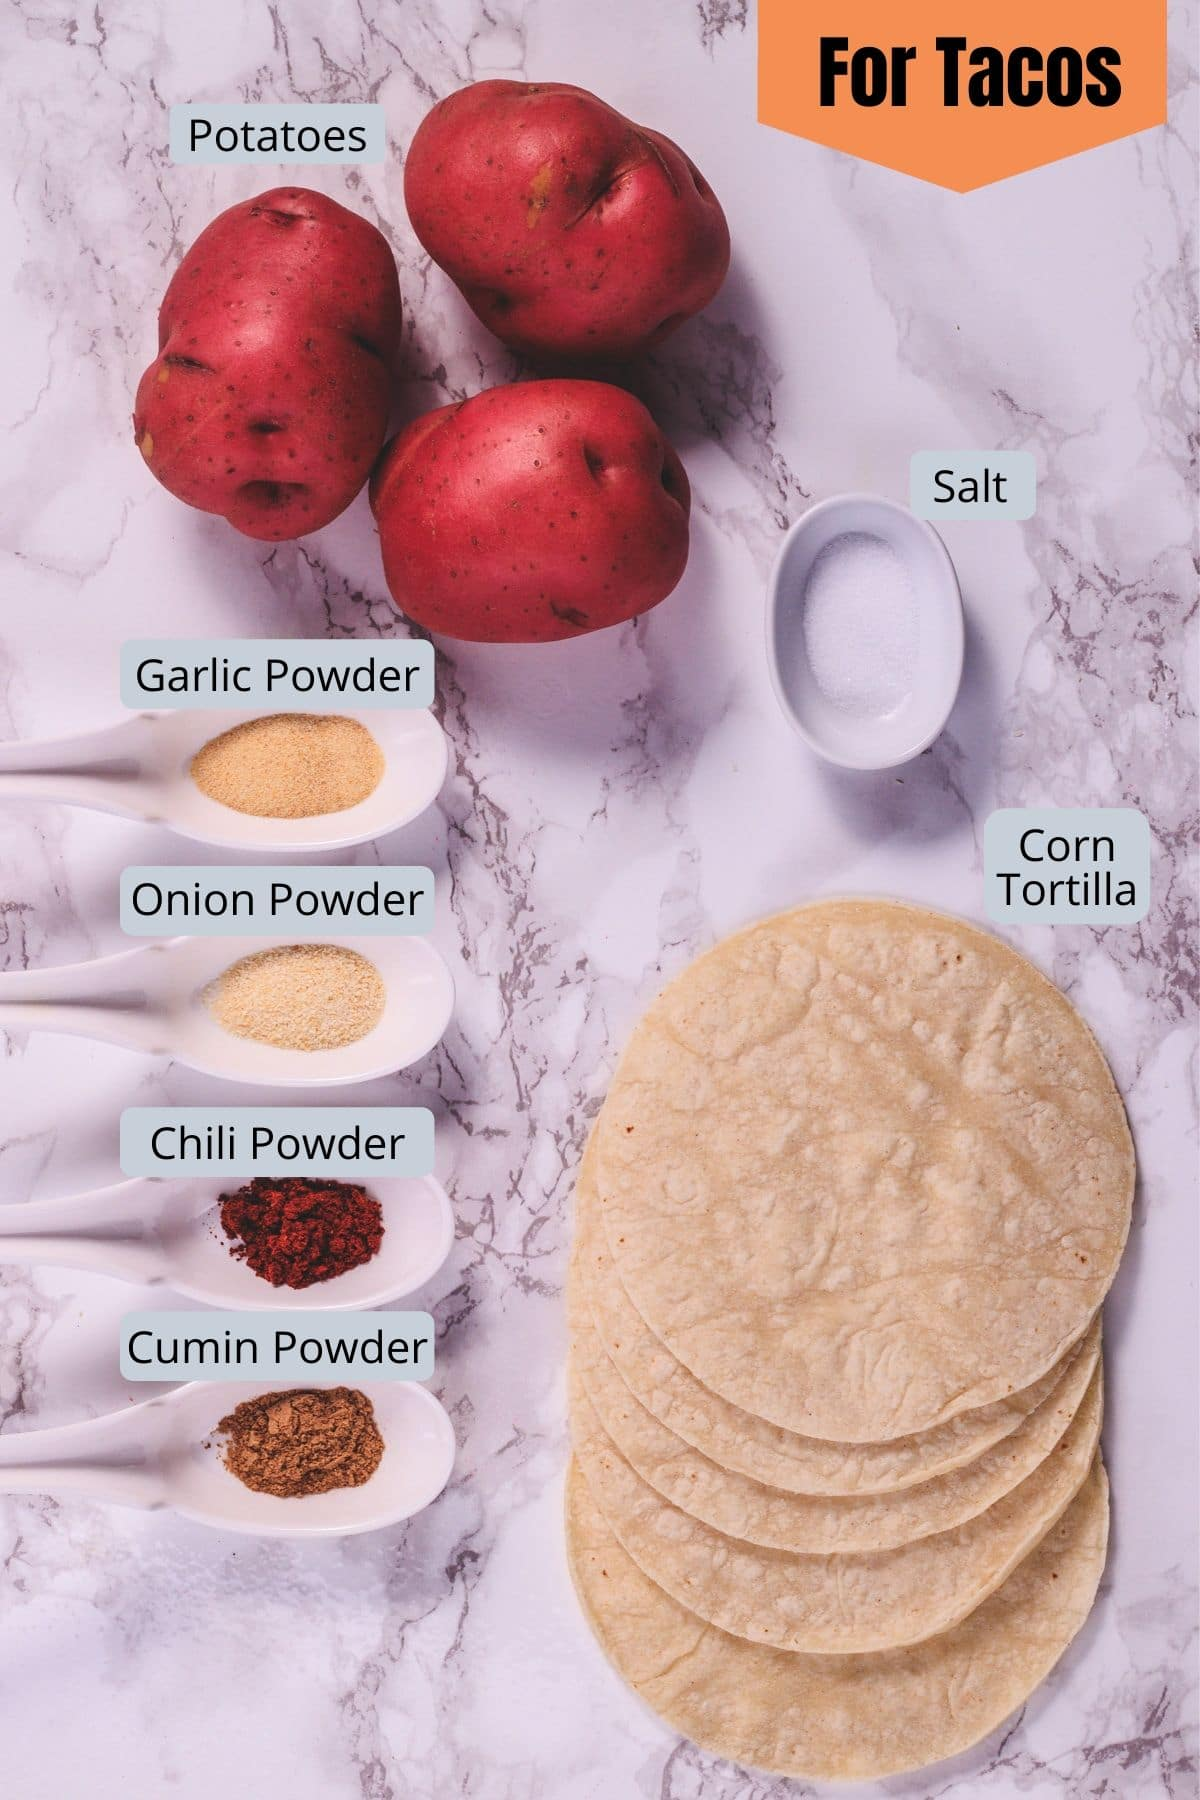 Mexican crispy potato taco ingredients